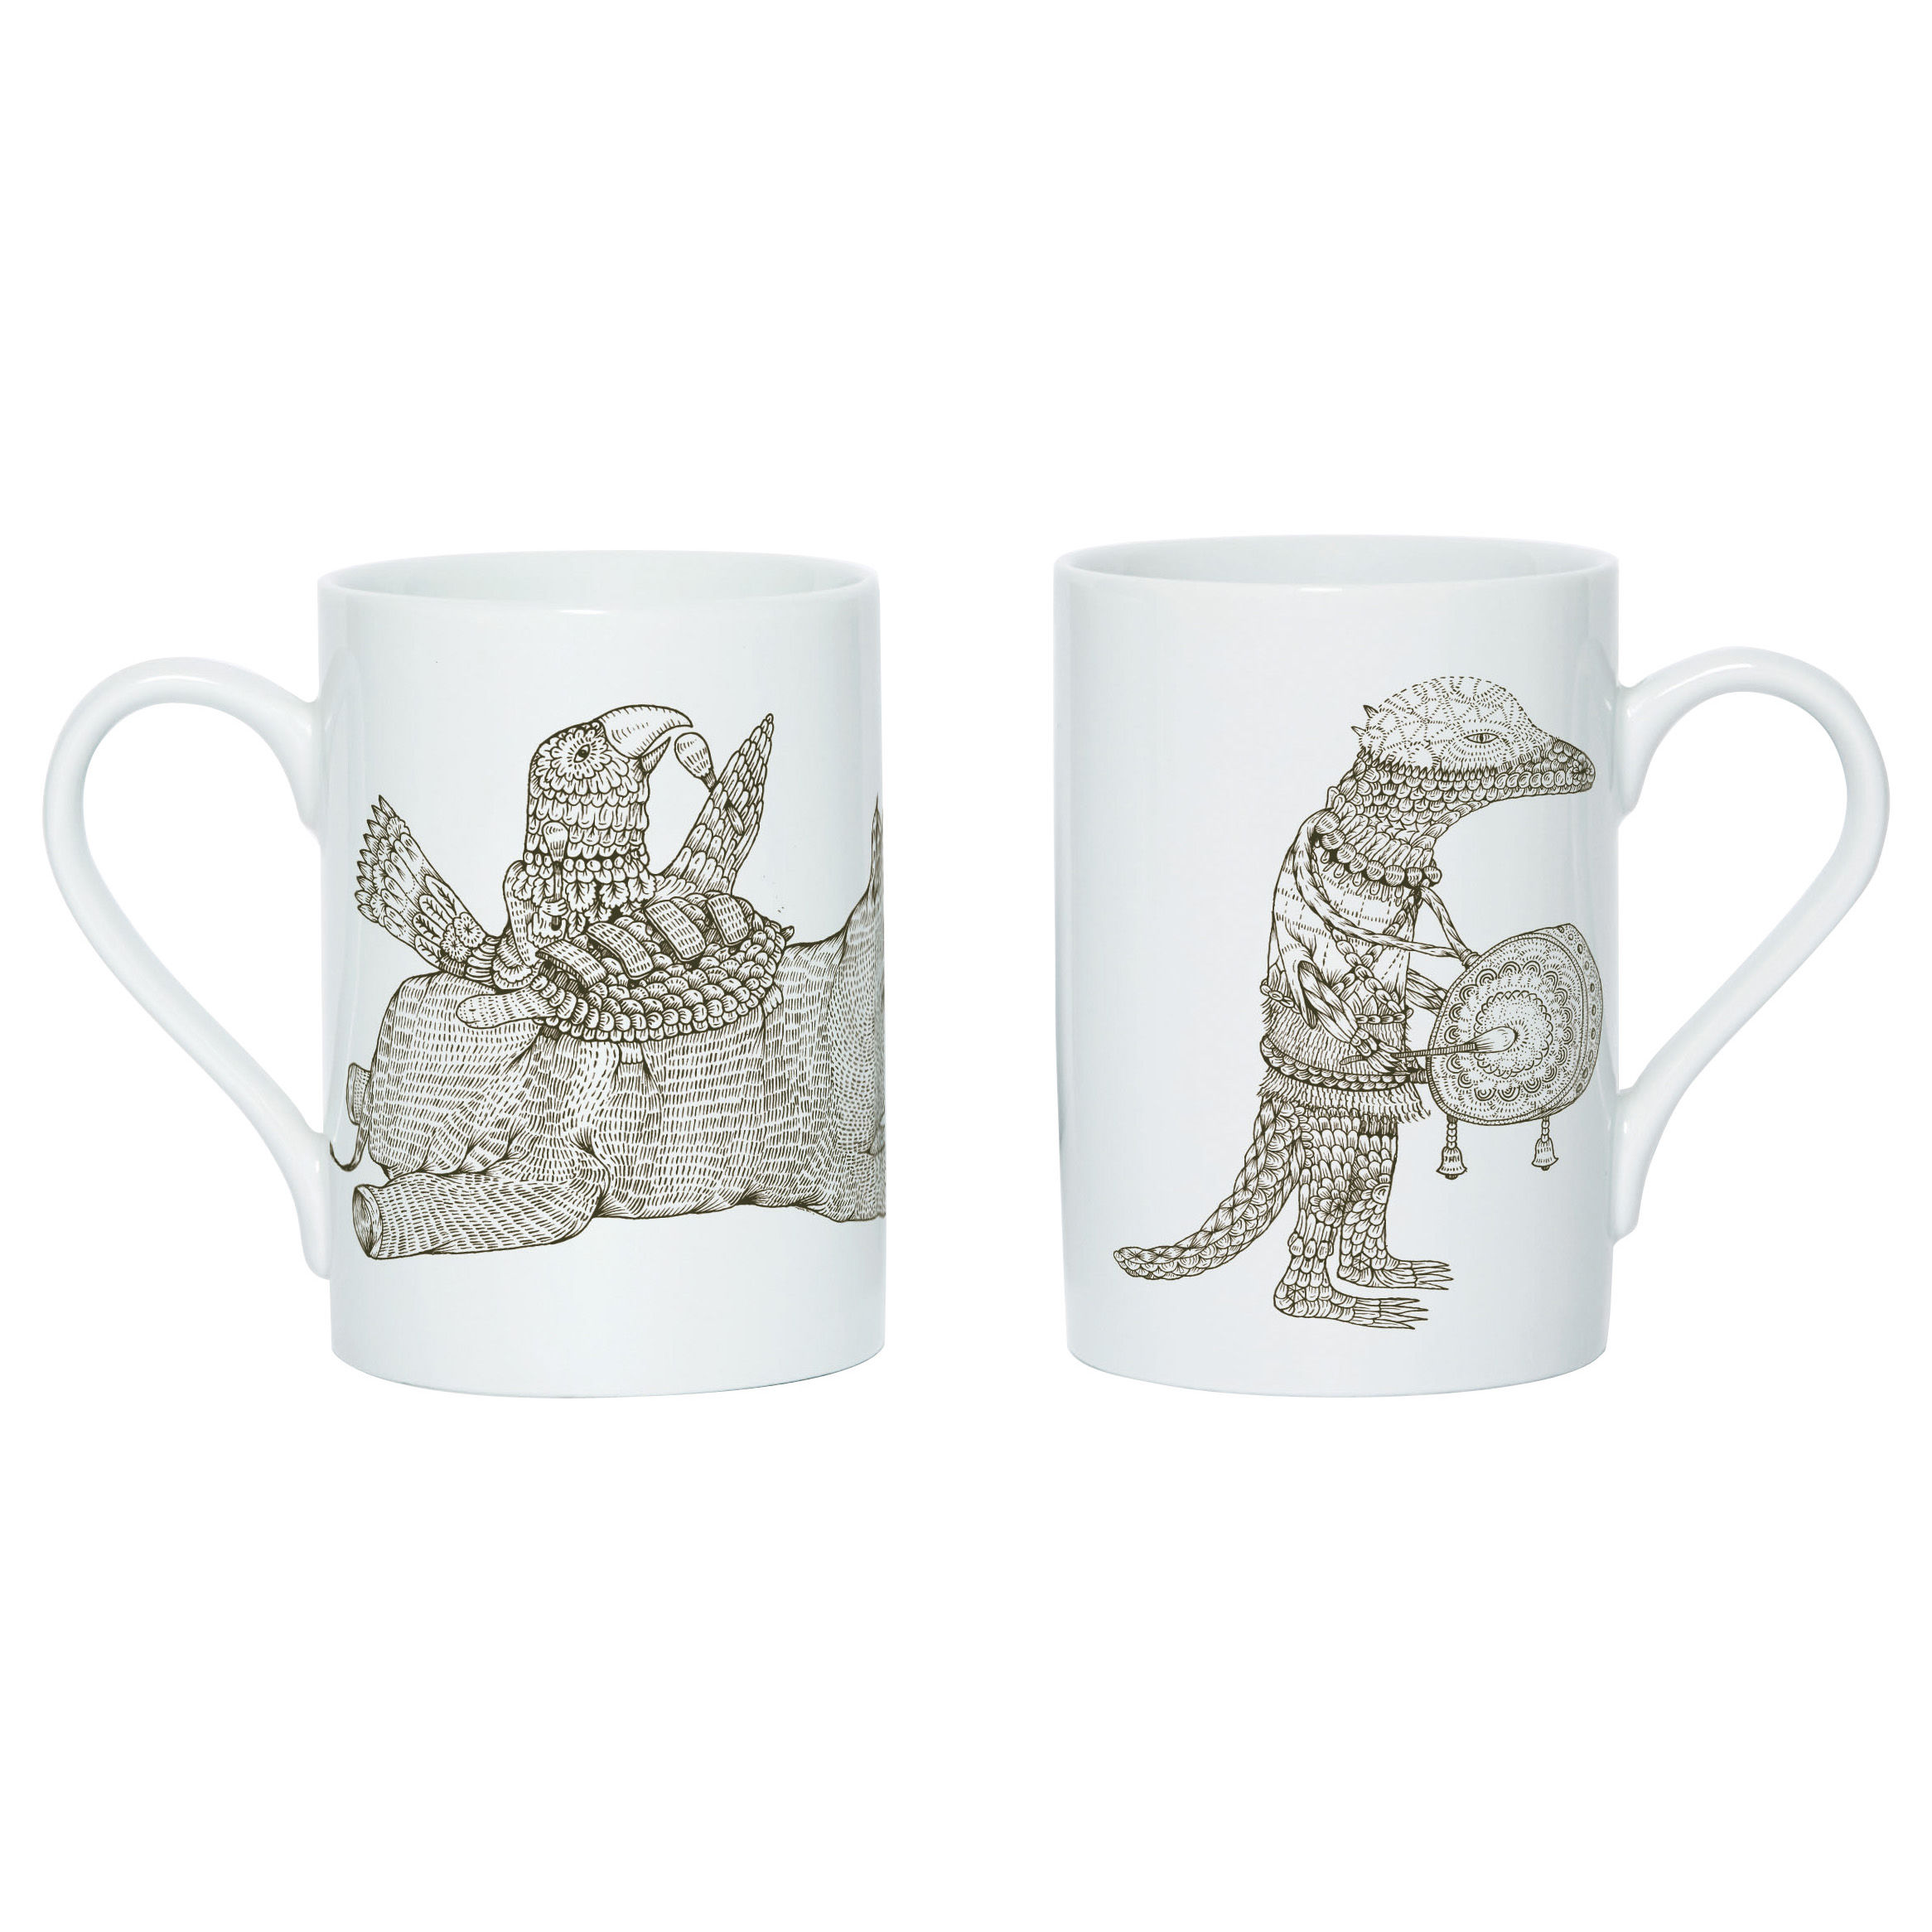 Arts de la table - Tasses et mugs - Mug Hivibes B - Domestic - Hivibes B / Brun - Porcelaine